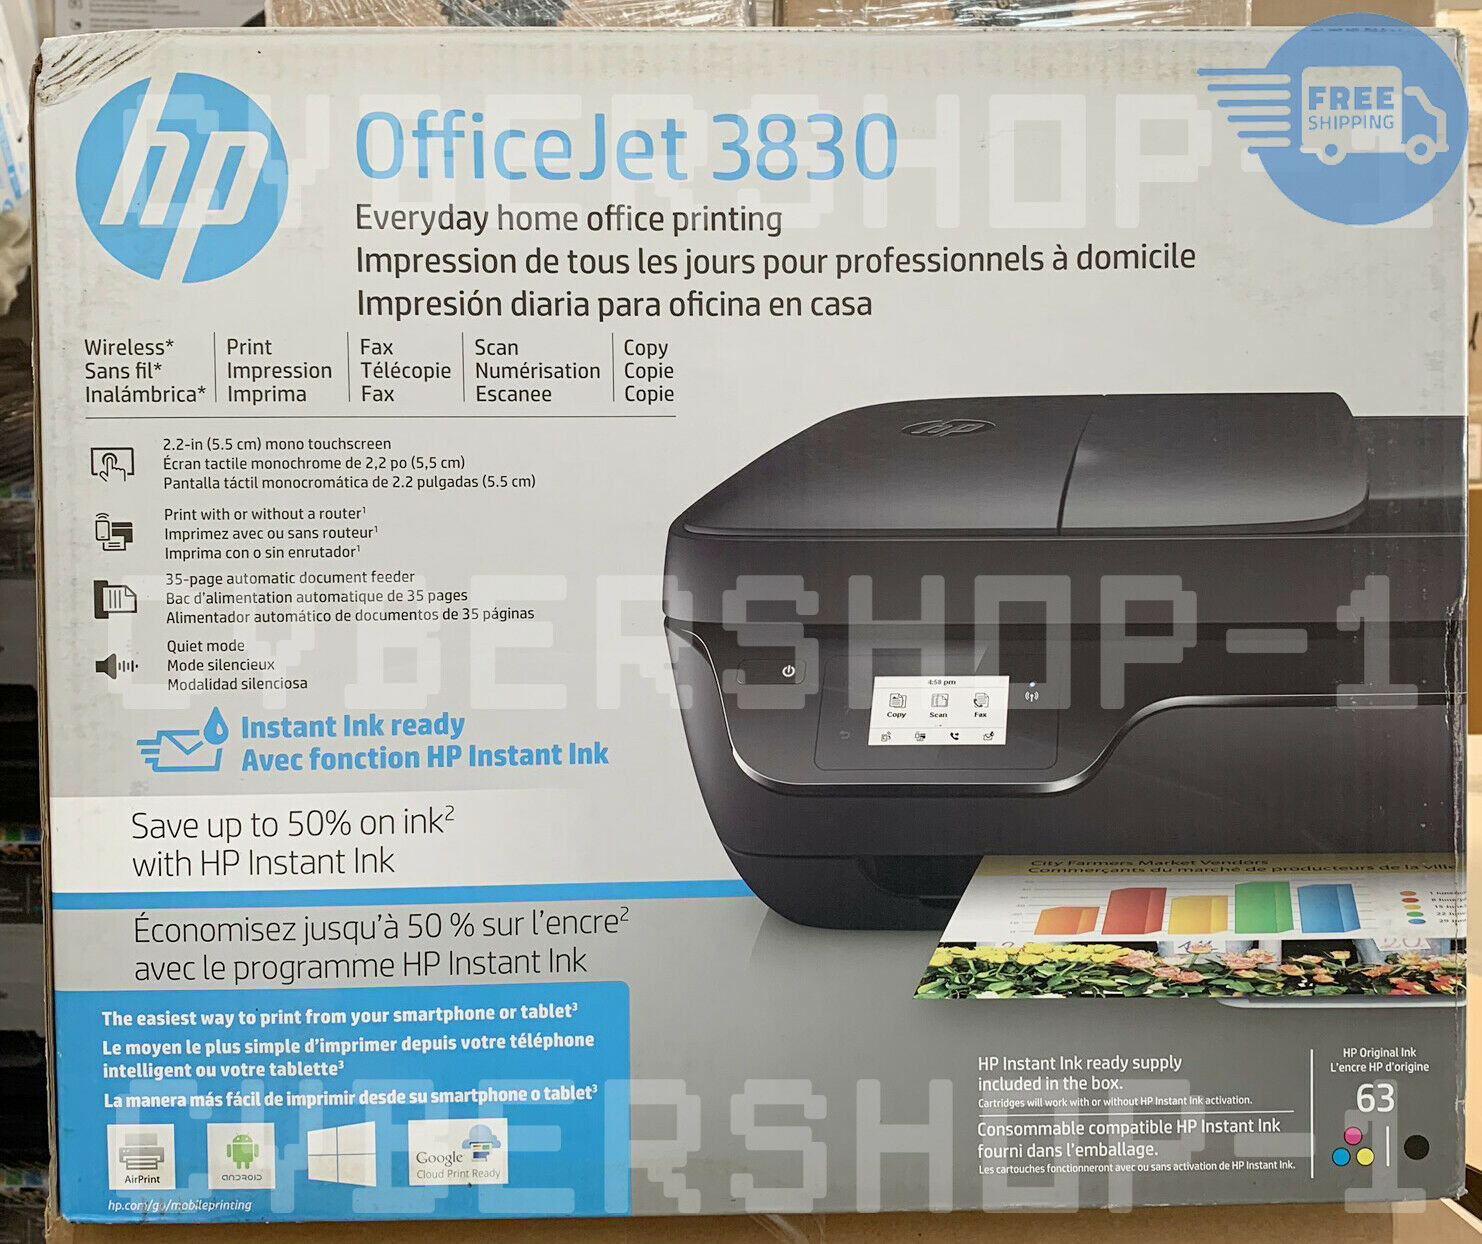 NEW HP OfficeJet 3830 All-in-One Printer